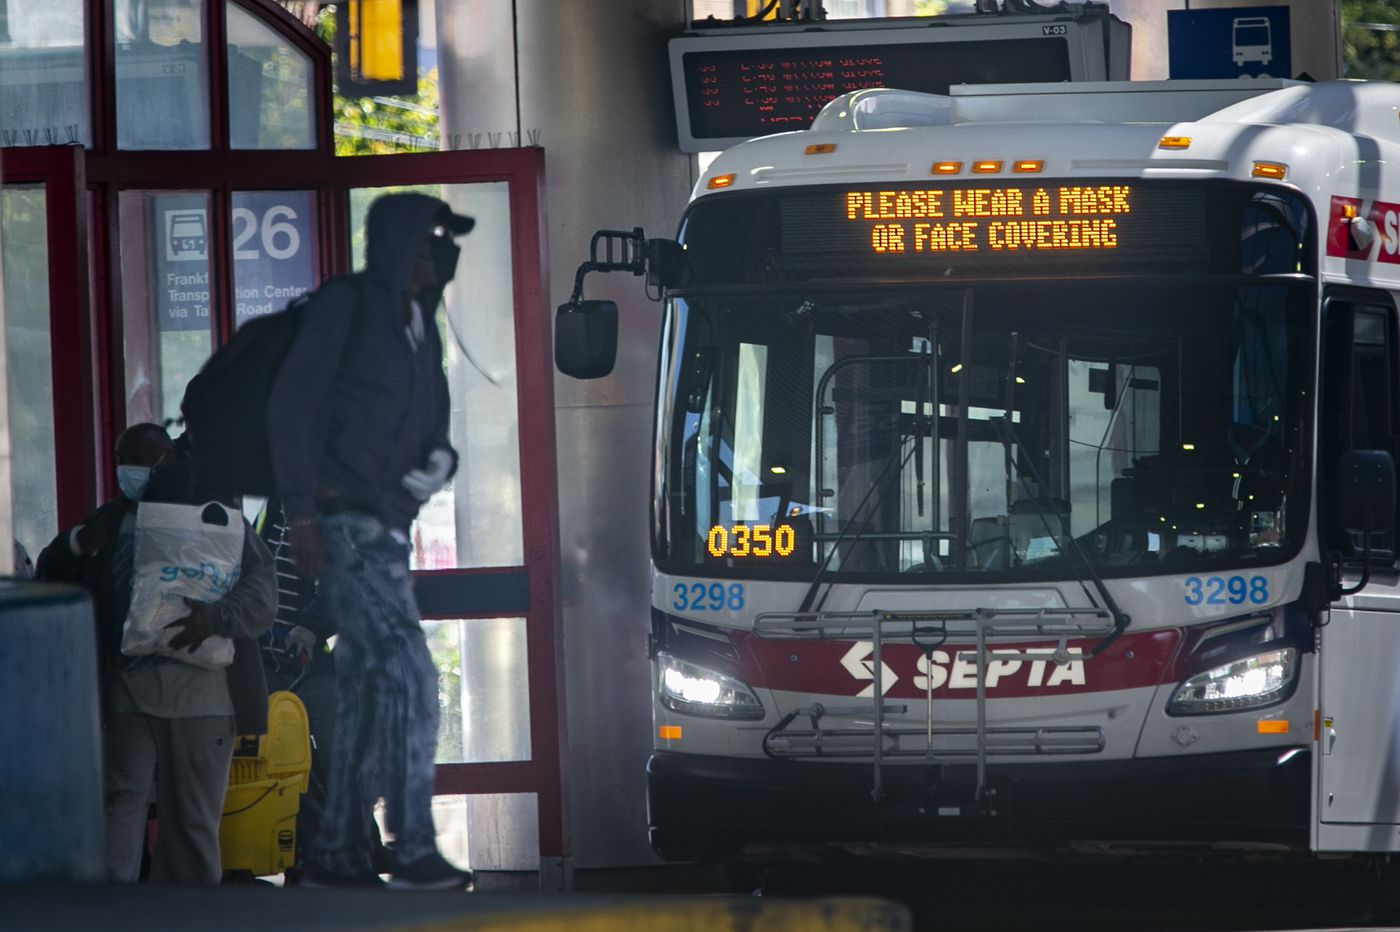 Most SEPTA transit service returning; fare collection to resume on buses and trolleys